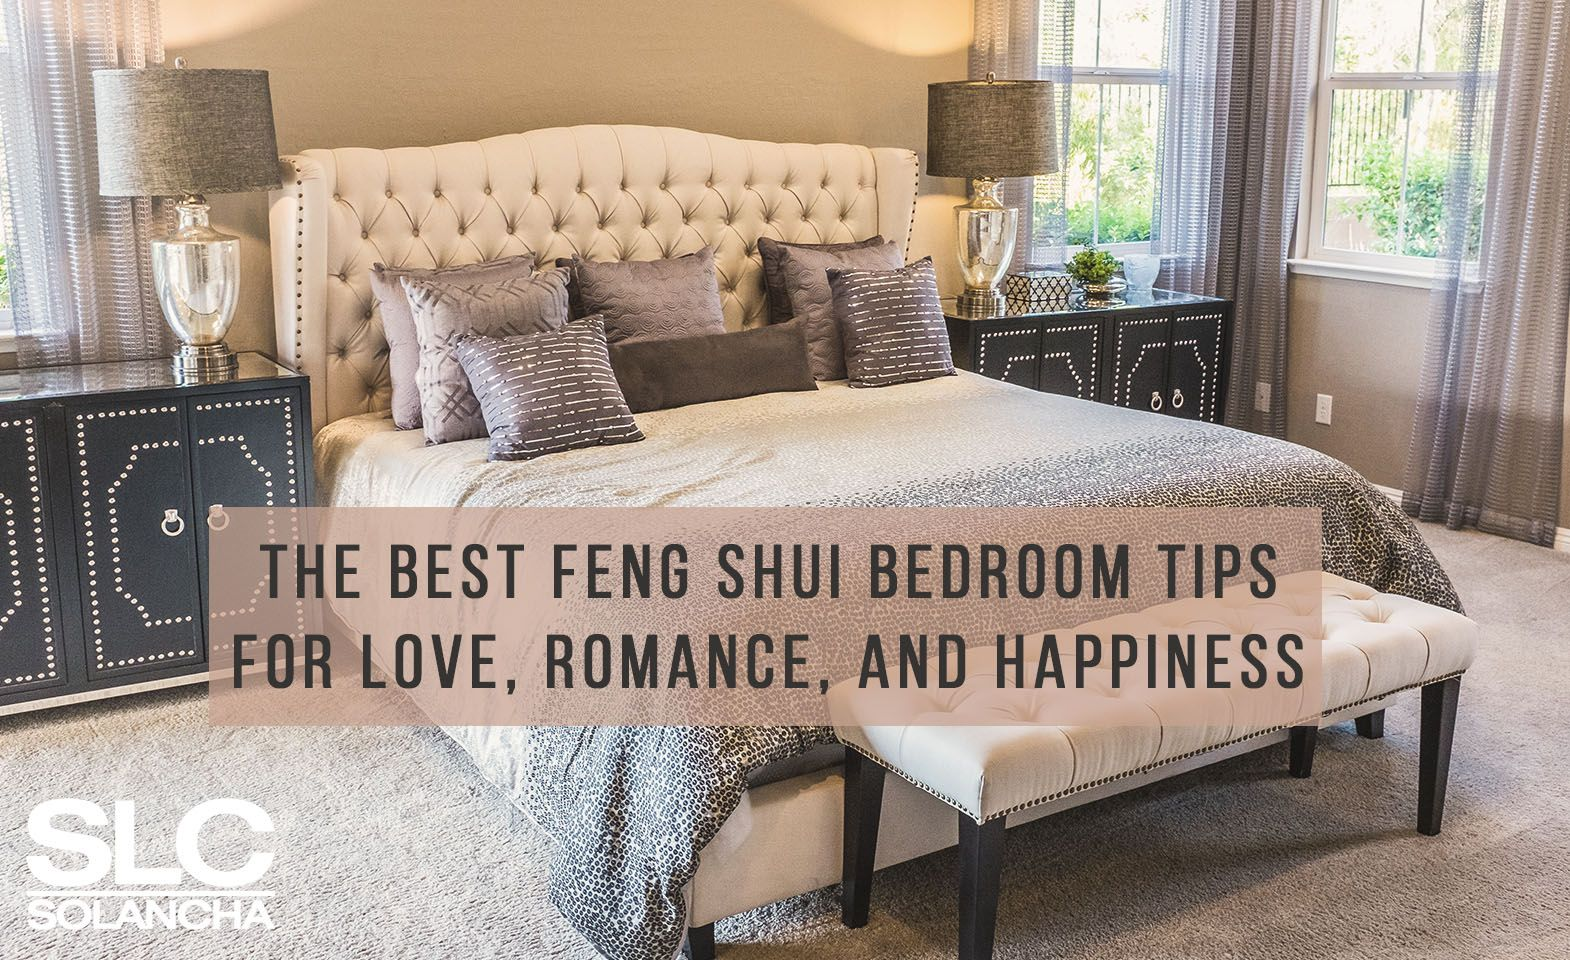 The Best Feng Shui Bedroom Tips For Love Romance And Happiness